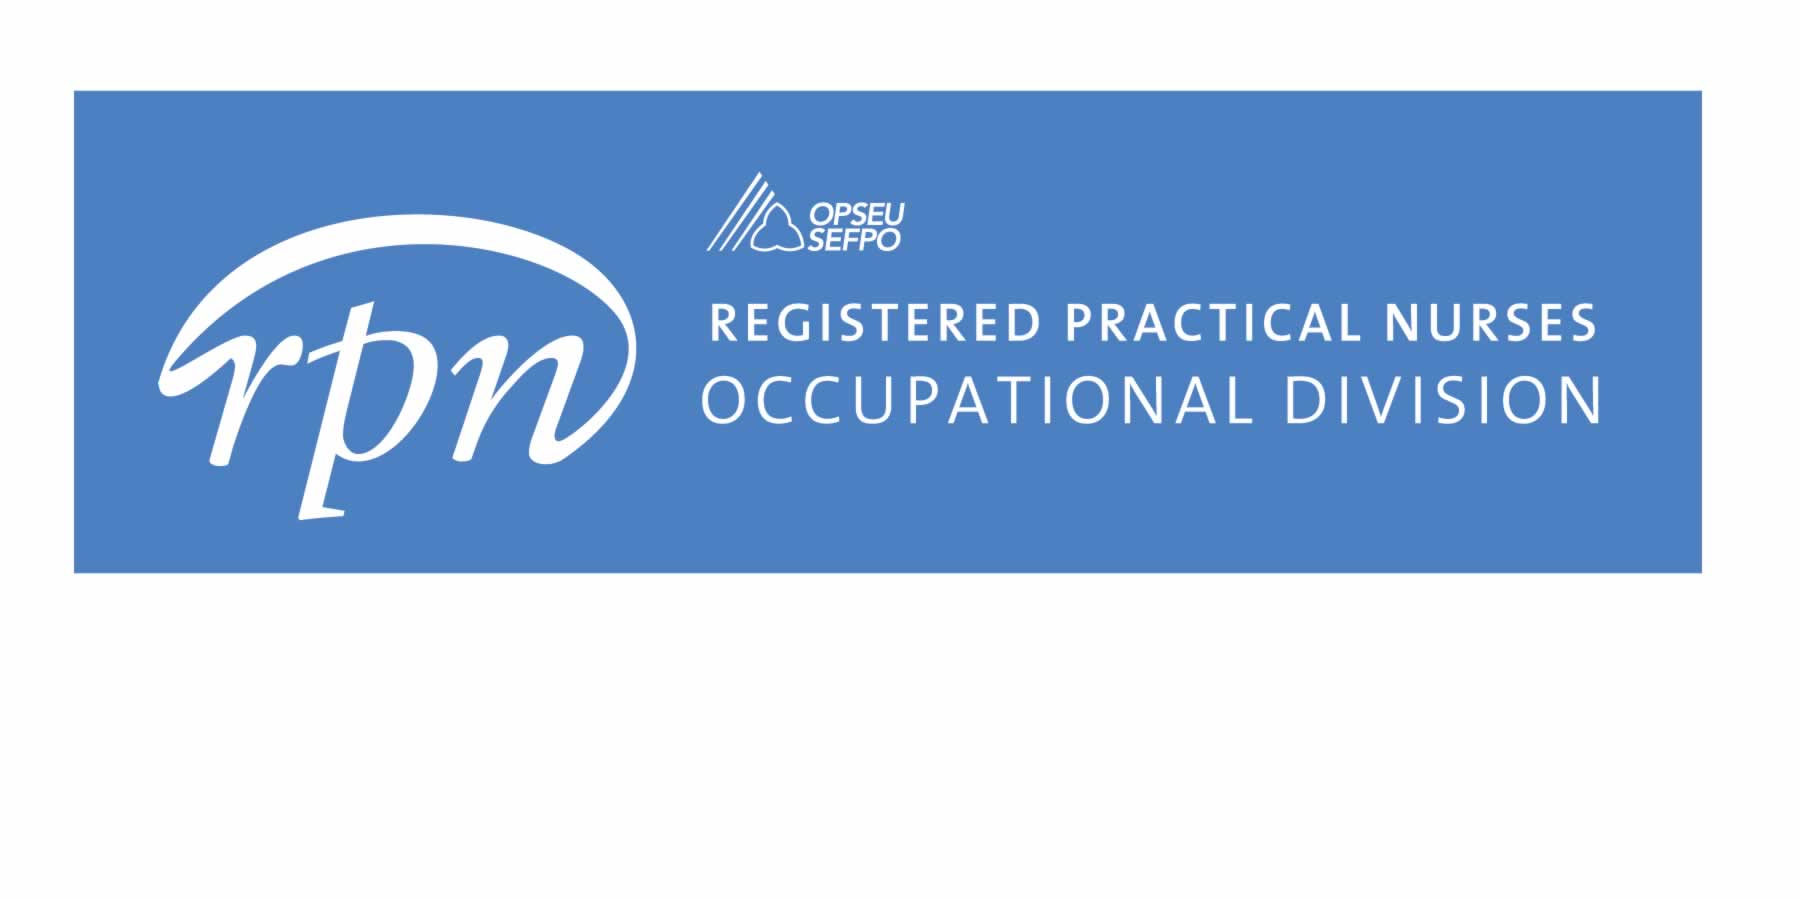 Registered practical nurses occupational division